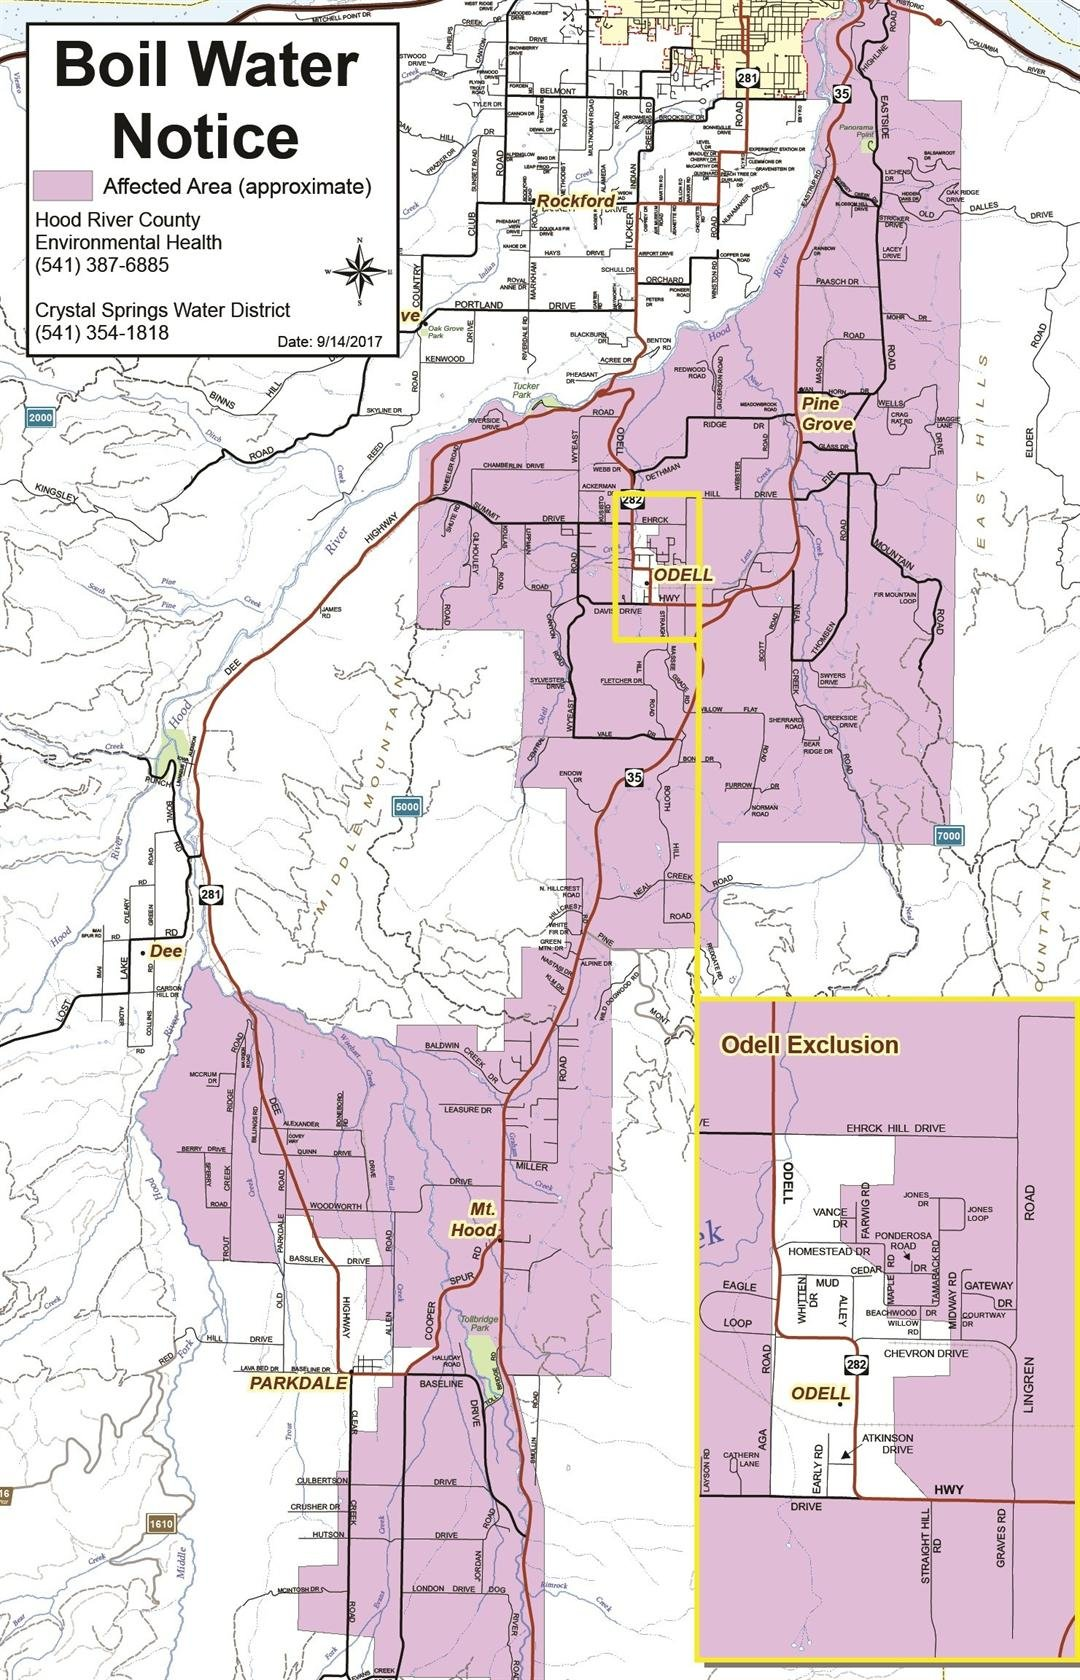 Boil water advisory map for Crystal Springs Water District (Image: Hood River County Health Department)